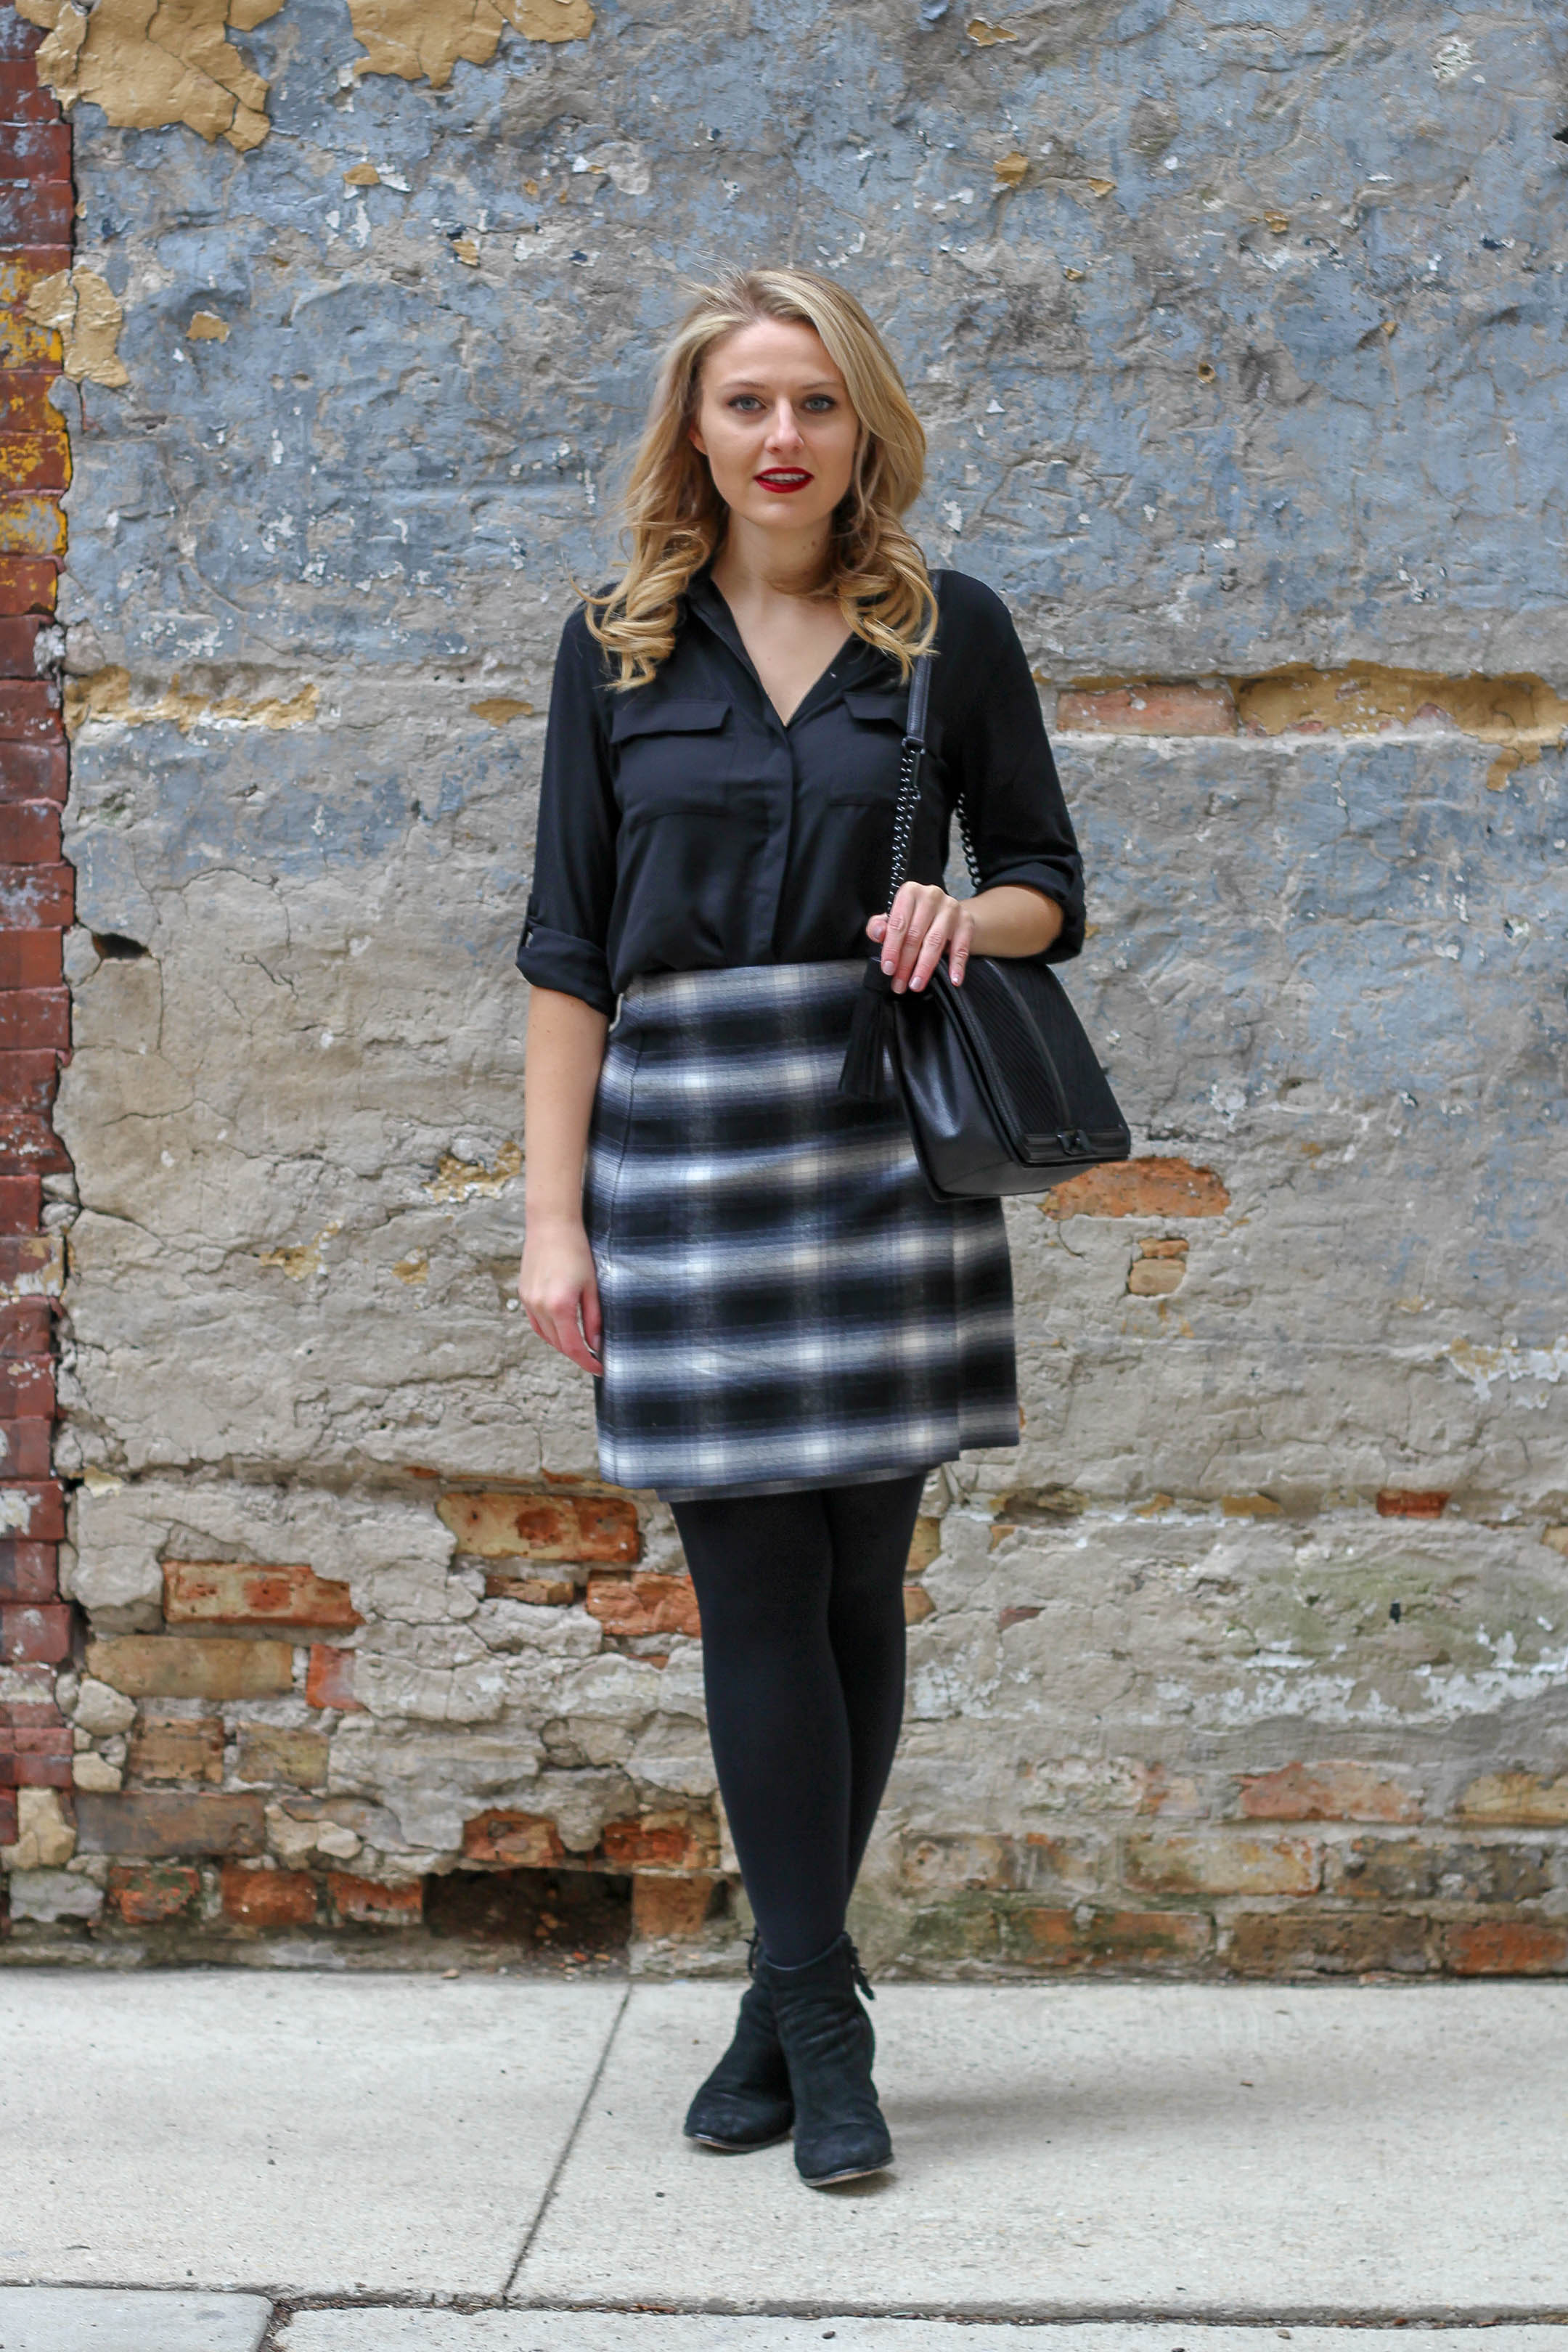 A perfectly plaid skirt from LOFT for only $30